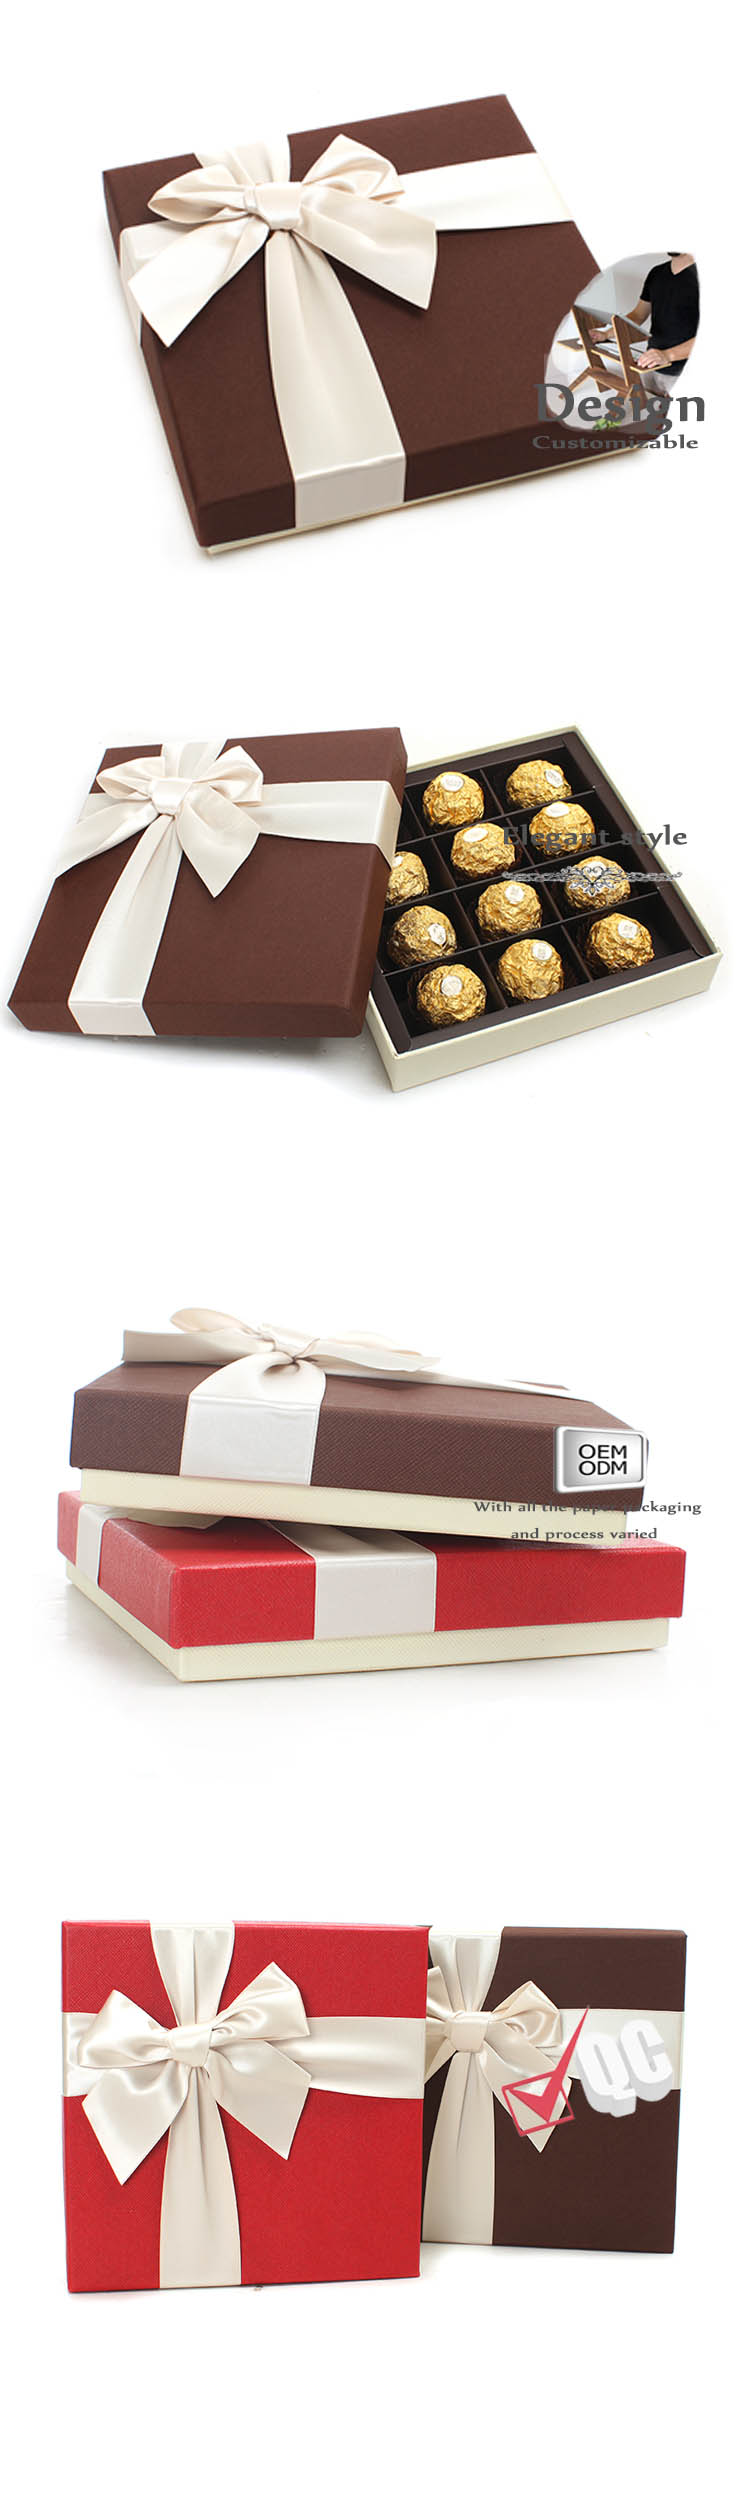 chocolate box custom